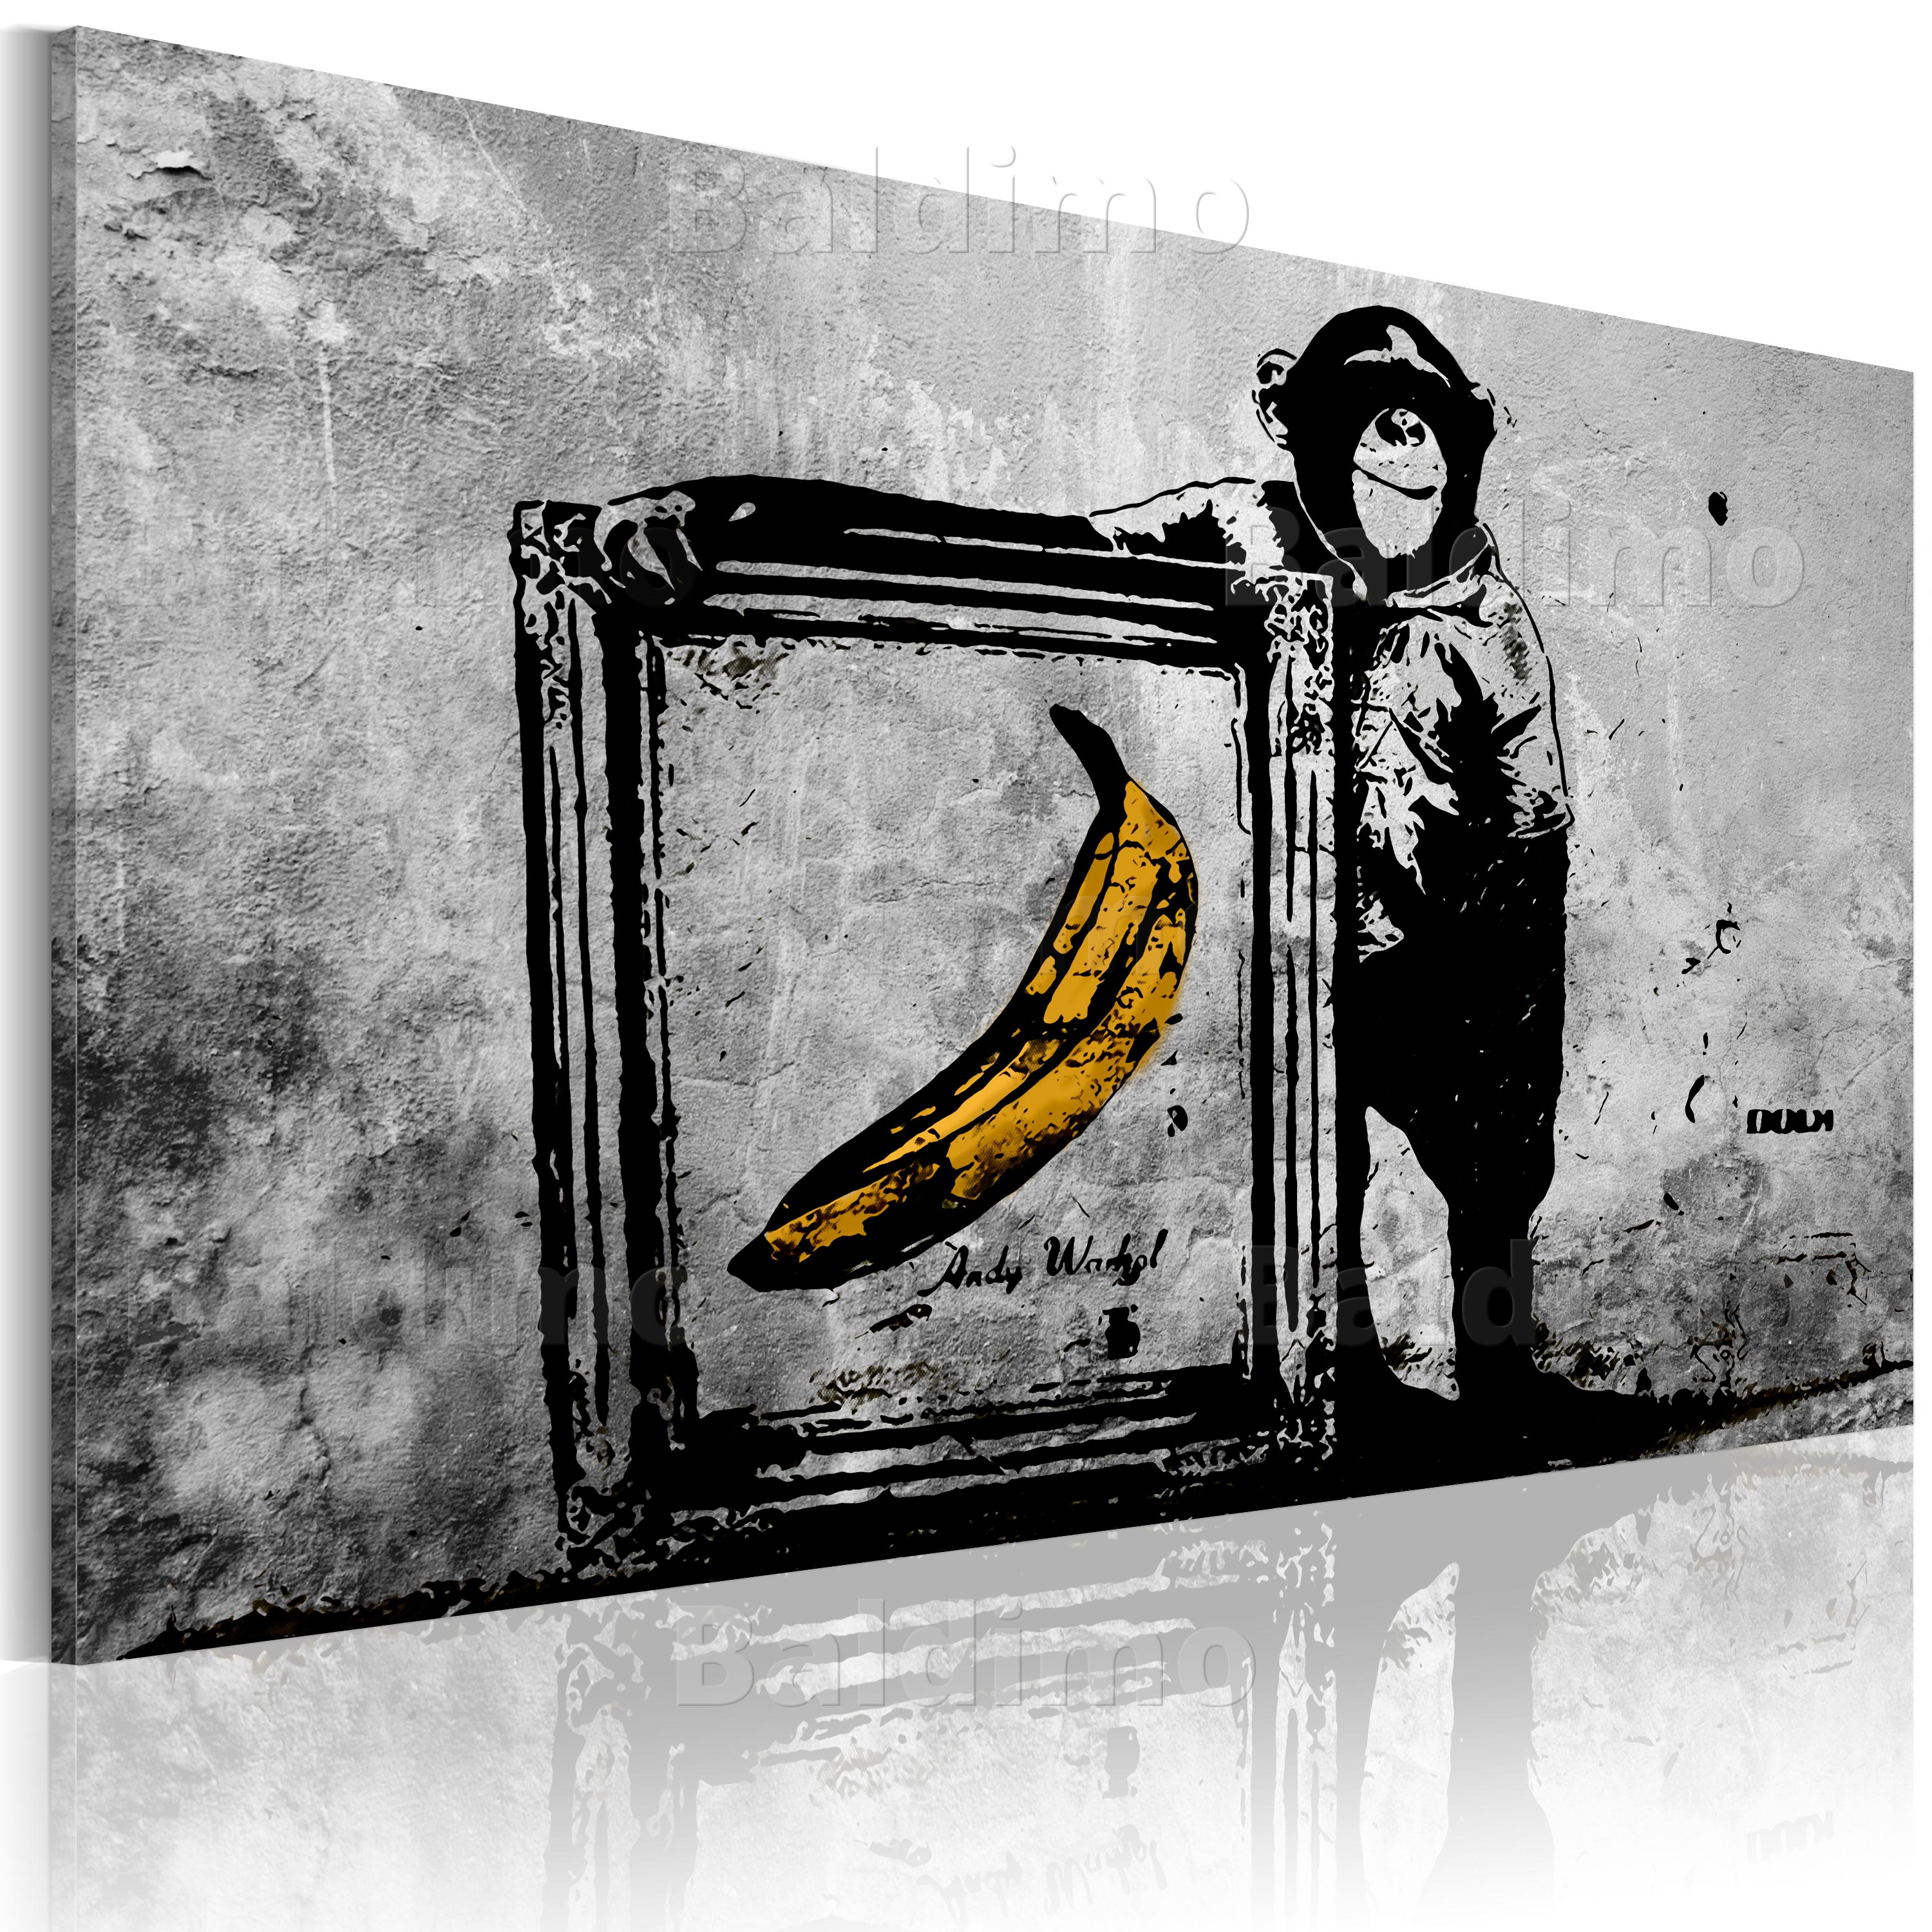 leinwand bilder xxl fertig aufgespannt bild banksy. Black Bedroom Furniture Sets. Home Design Ideas